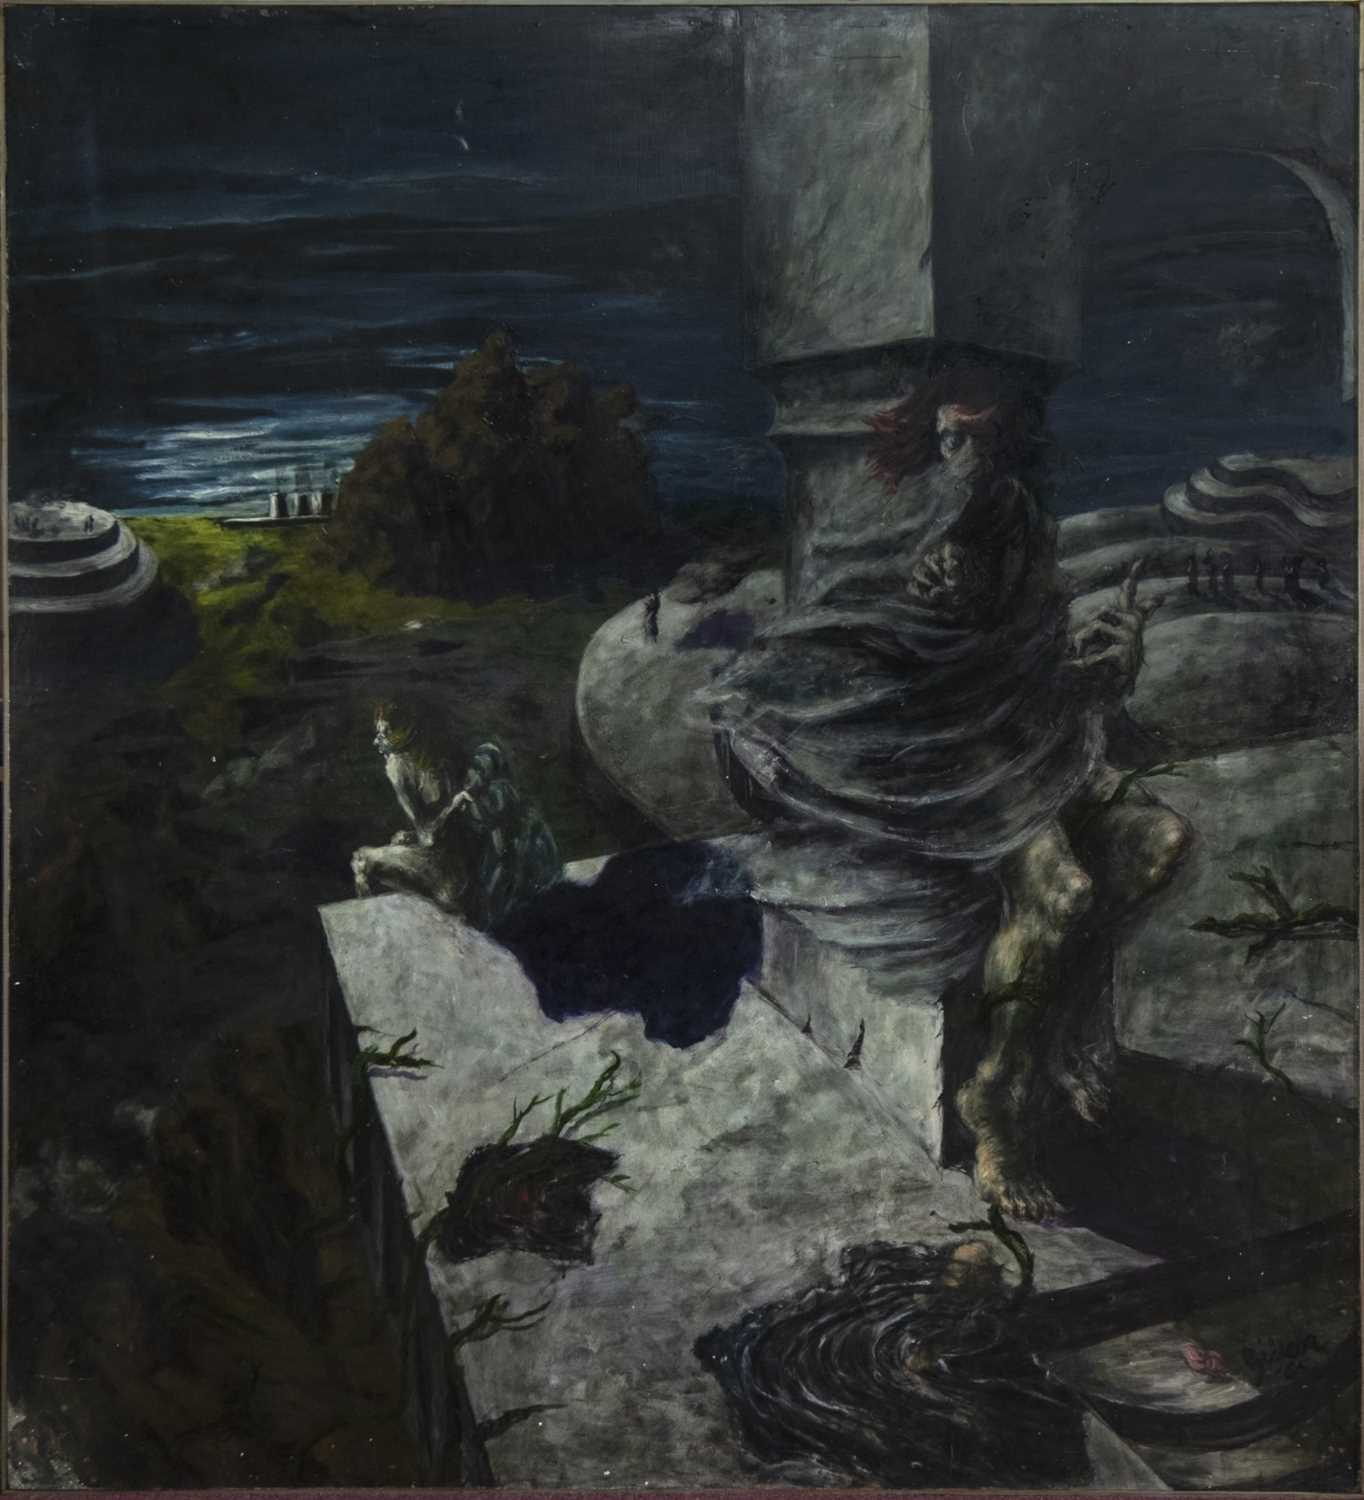 Lot 555 - GHOSTLY FIGURES IN A MYTHICAL SCENE, A LARGE OIL BY BILL GILLON